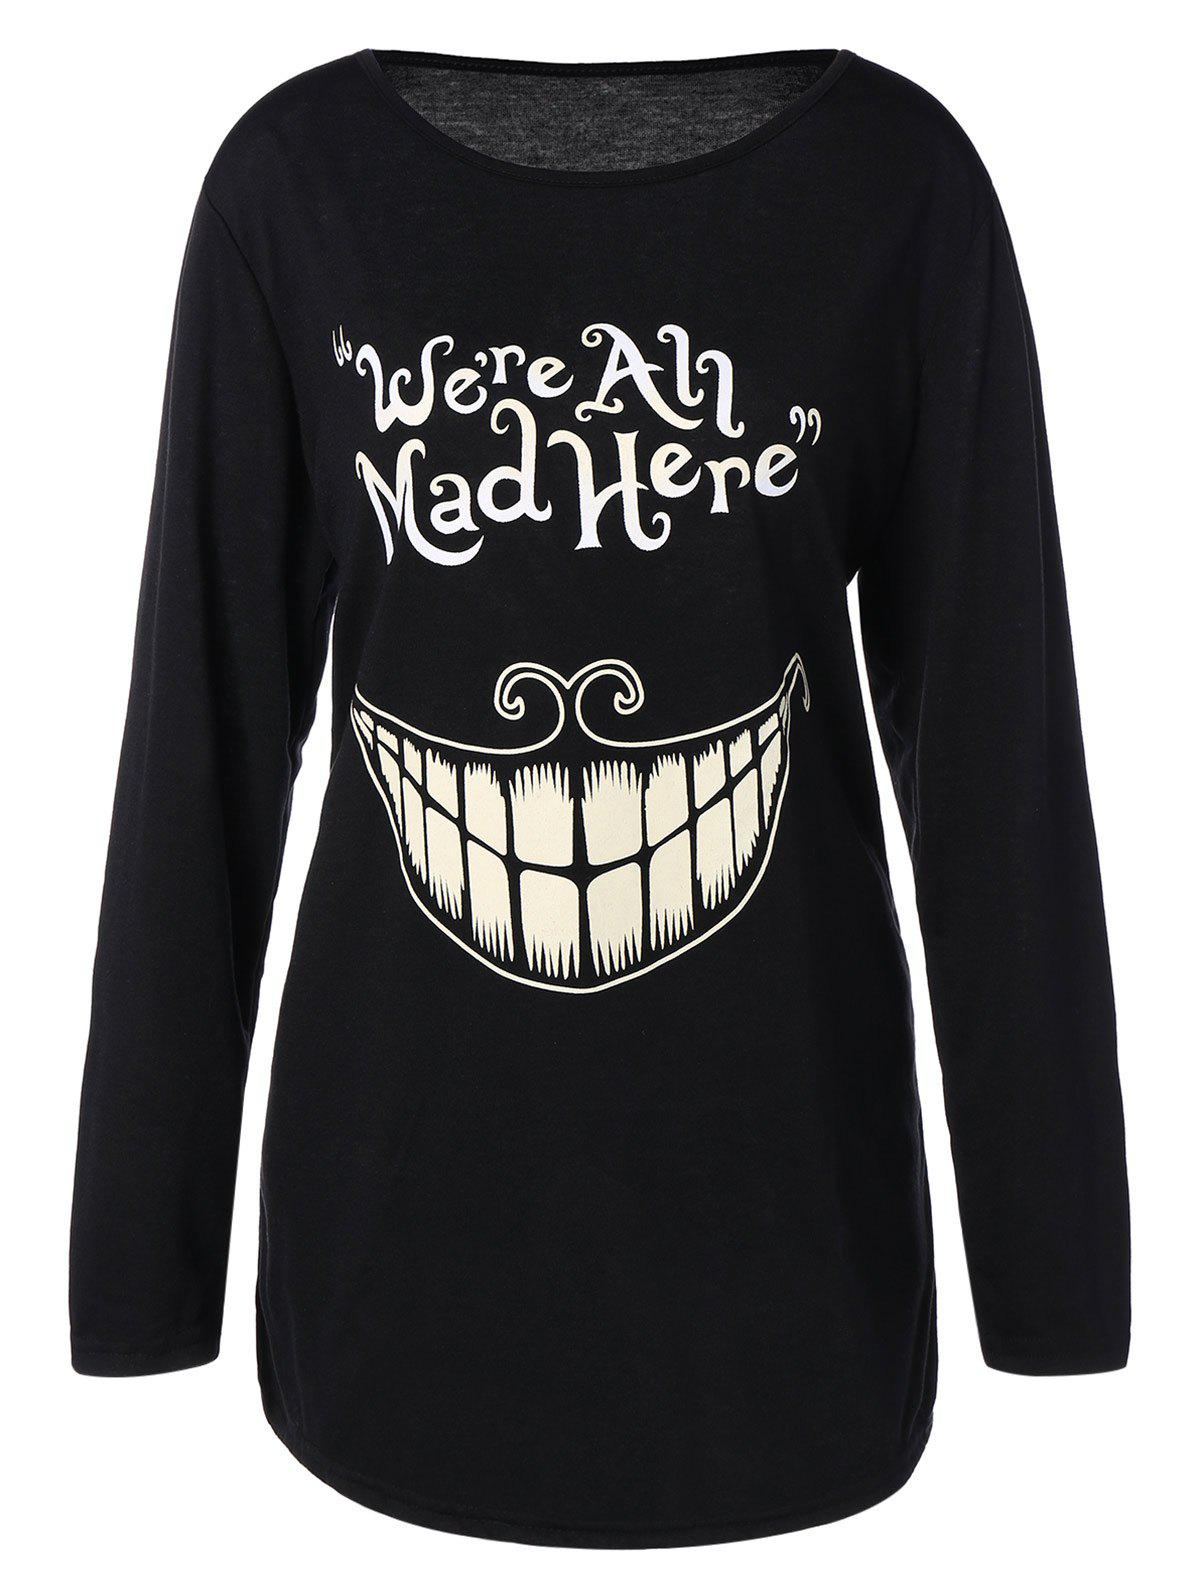 Plus Size Teeth and Letter Print T-Shirt - BLACK 2XL